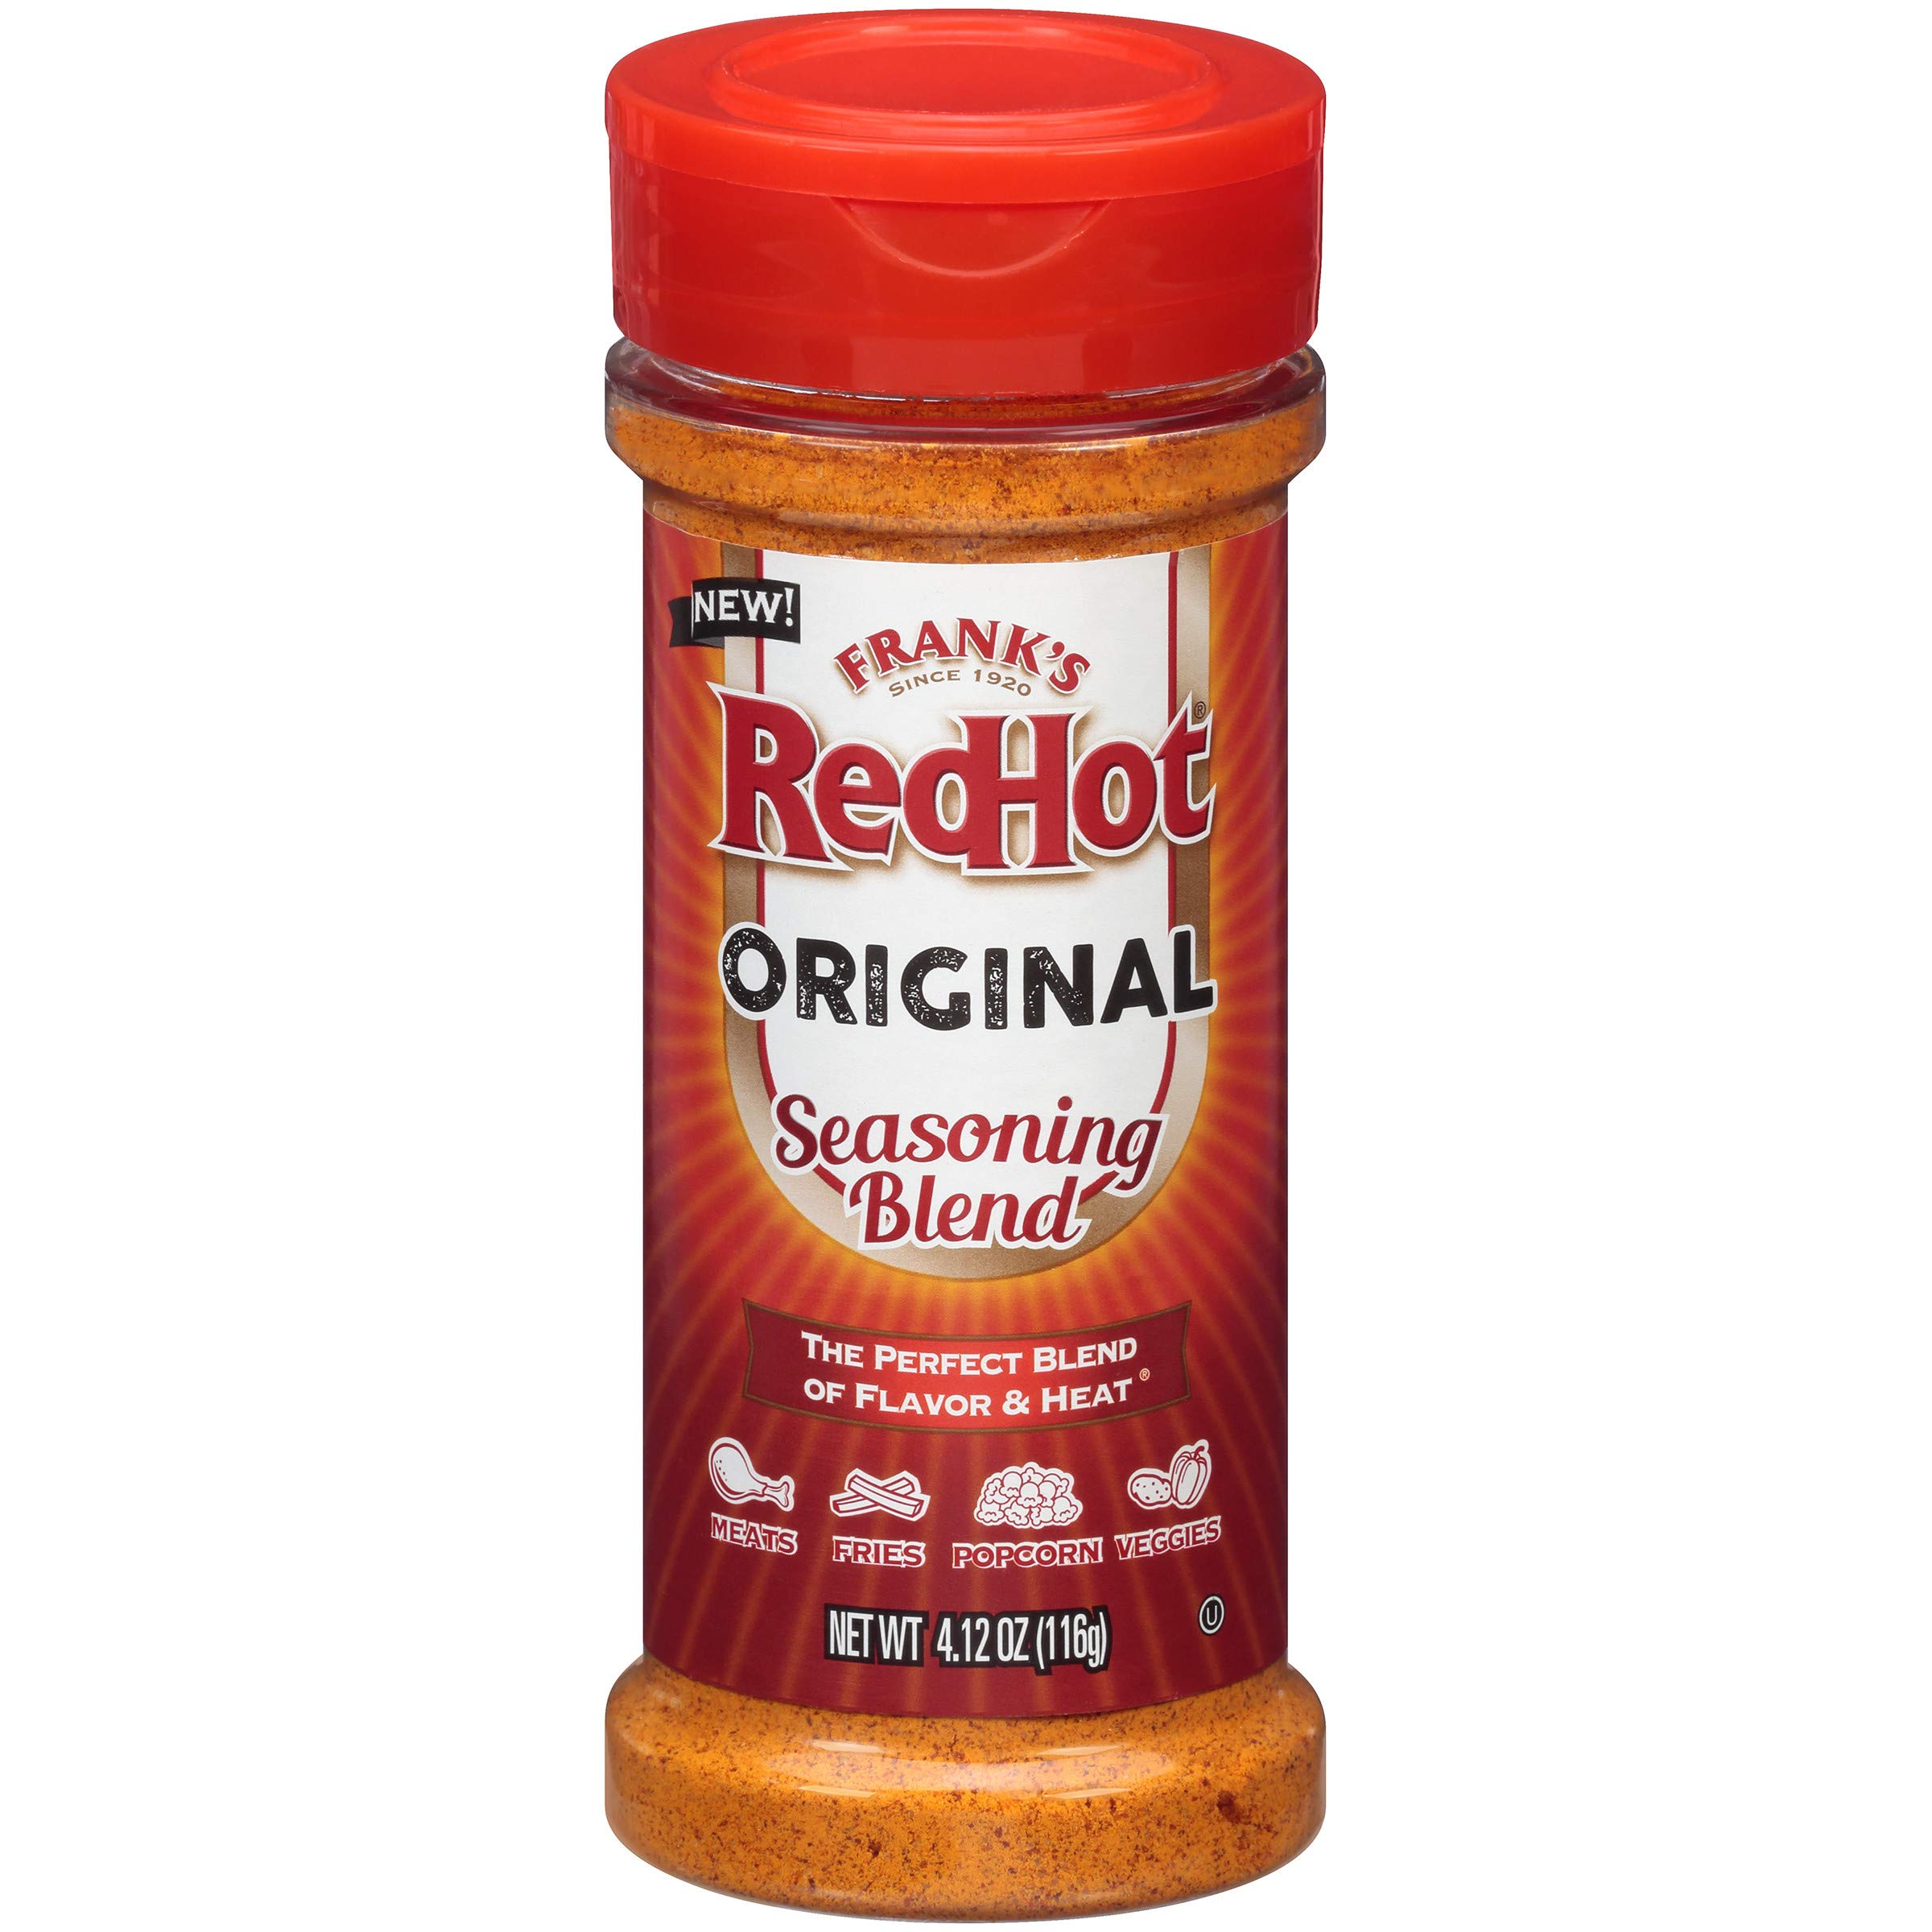 Frank's RedHot Original Seasoning Blend (Hot Sauce Powder) 4.12 oz